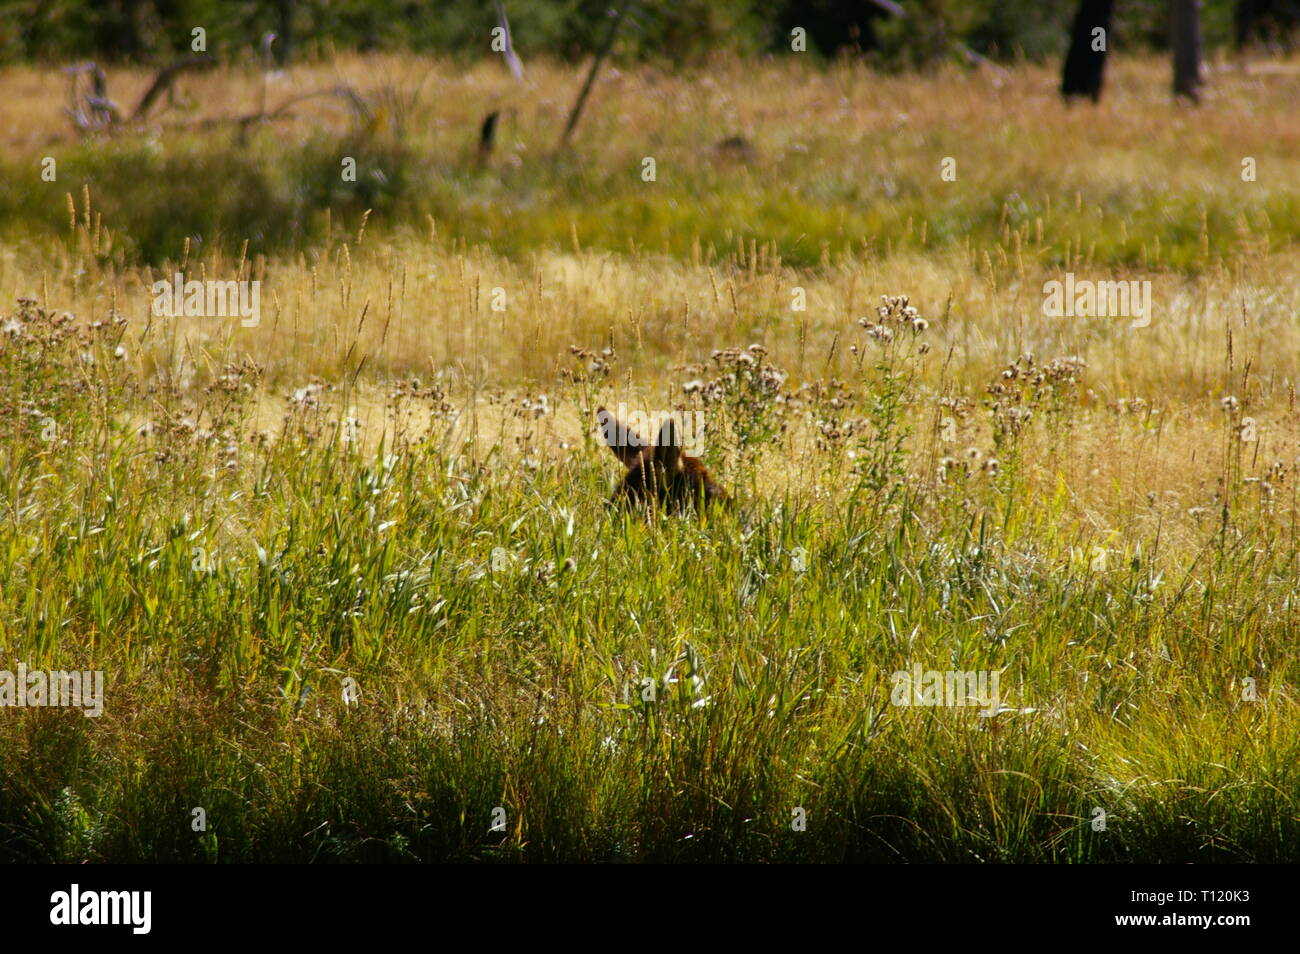 Female cow elk laying in tall grass with only the top of her head and ears visible. Yellowstone National Park, USA - Stock Image